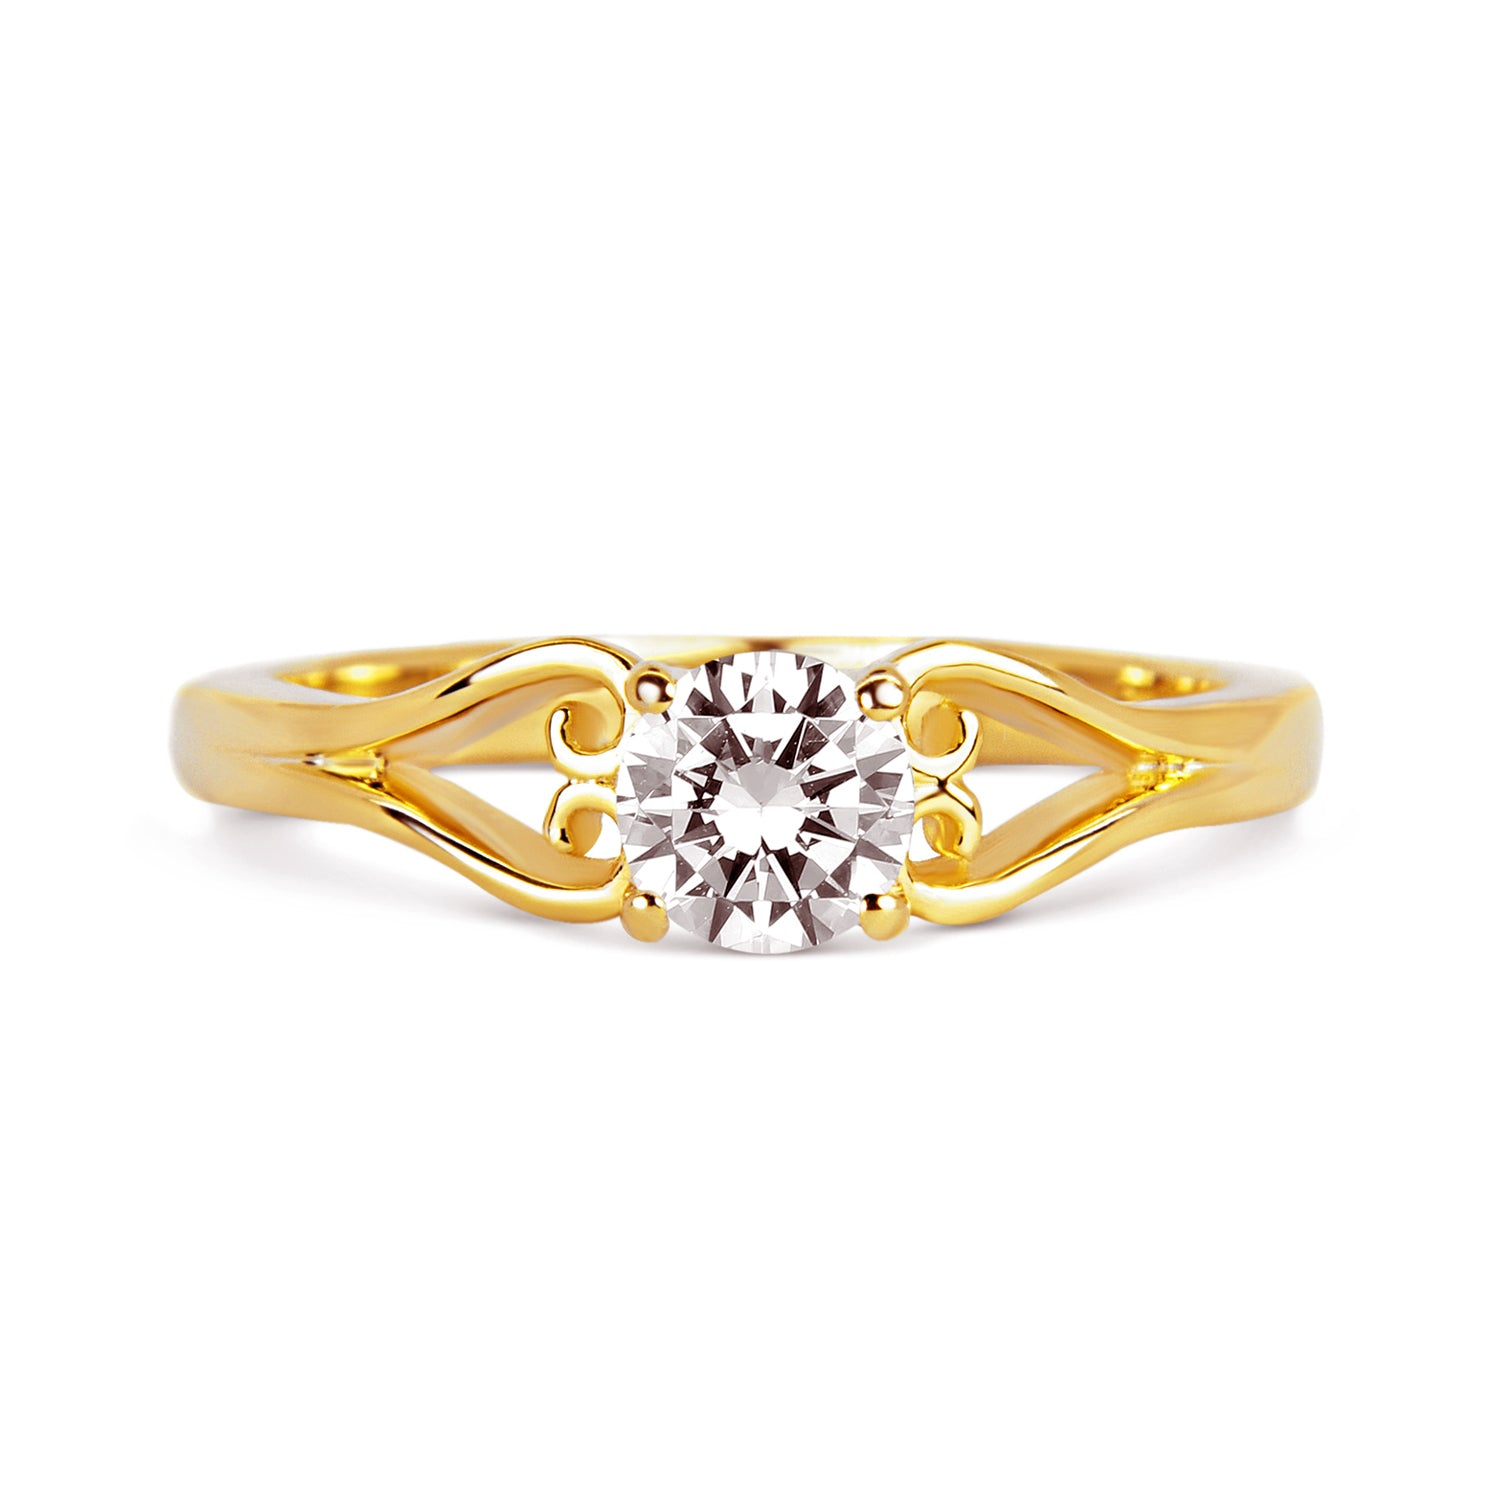 fairtrade gold crop diamonds an find bridal to engagement diamond subsampling in cut ethical earth with where ring article free featuring rings asscher false upscale ethicalrings and white scale conflict brilliant aster